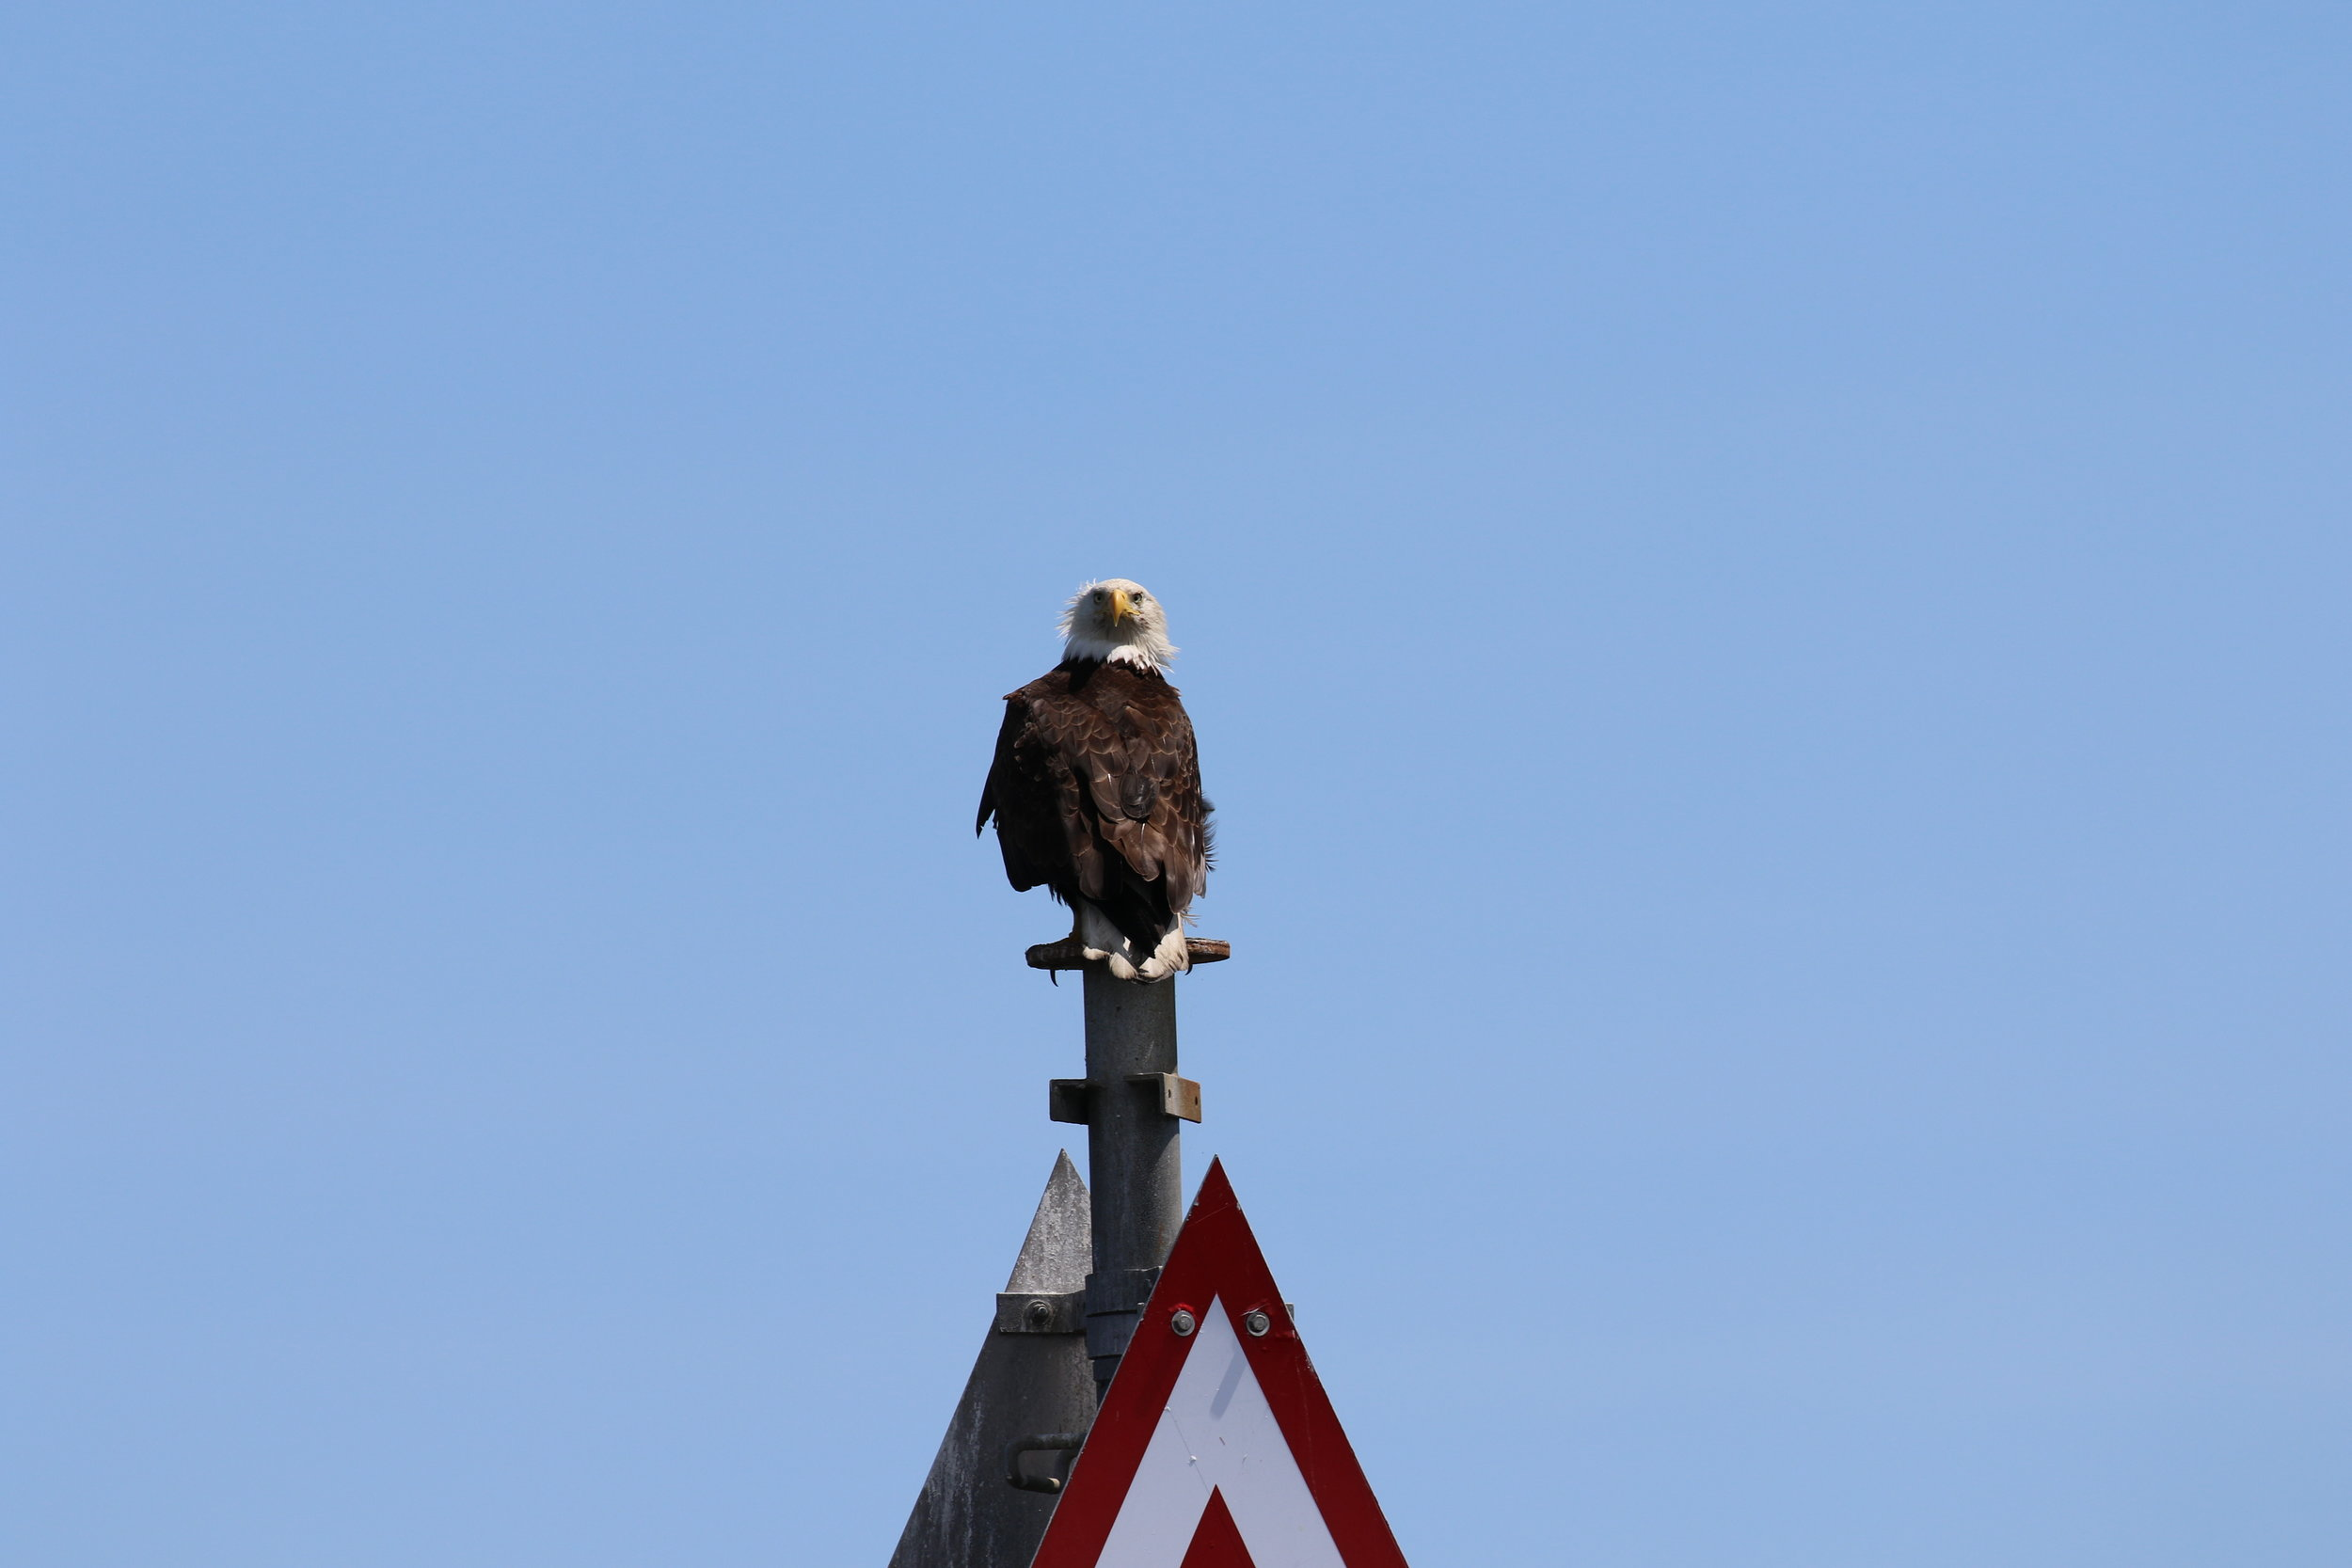 Perched bald eagle. Photo by Val Watson (10:30).